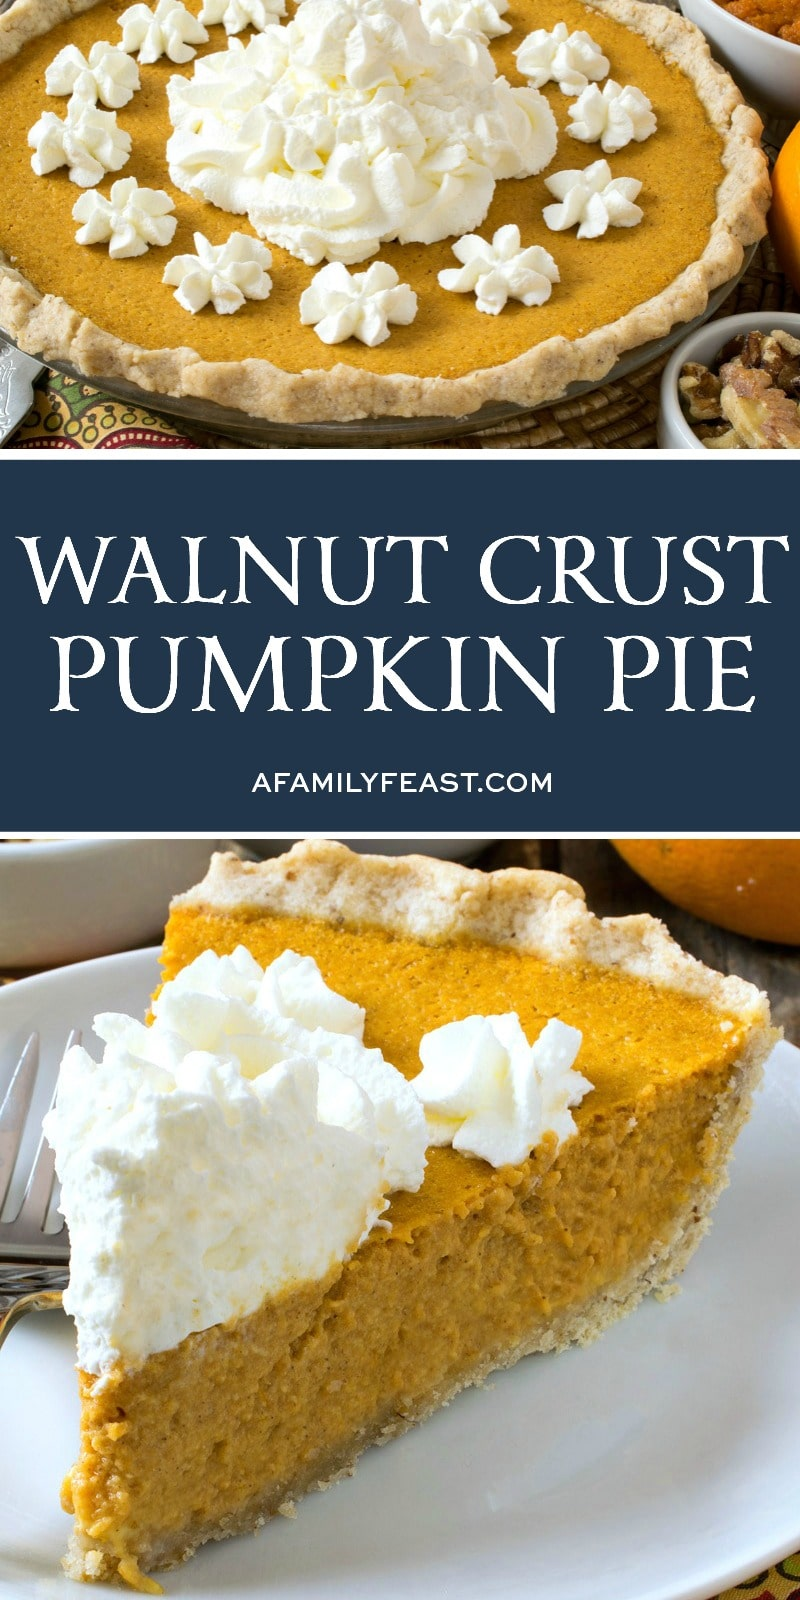 Walnut Crust Pumpkin Pie